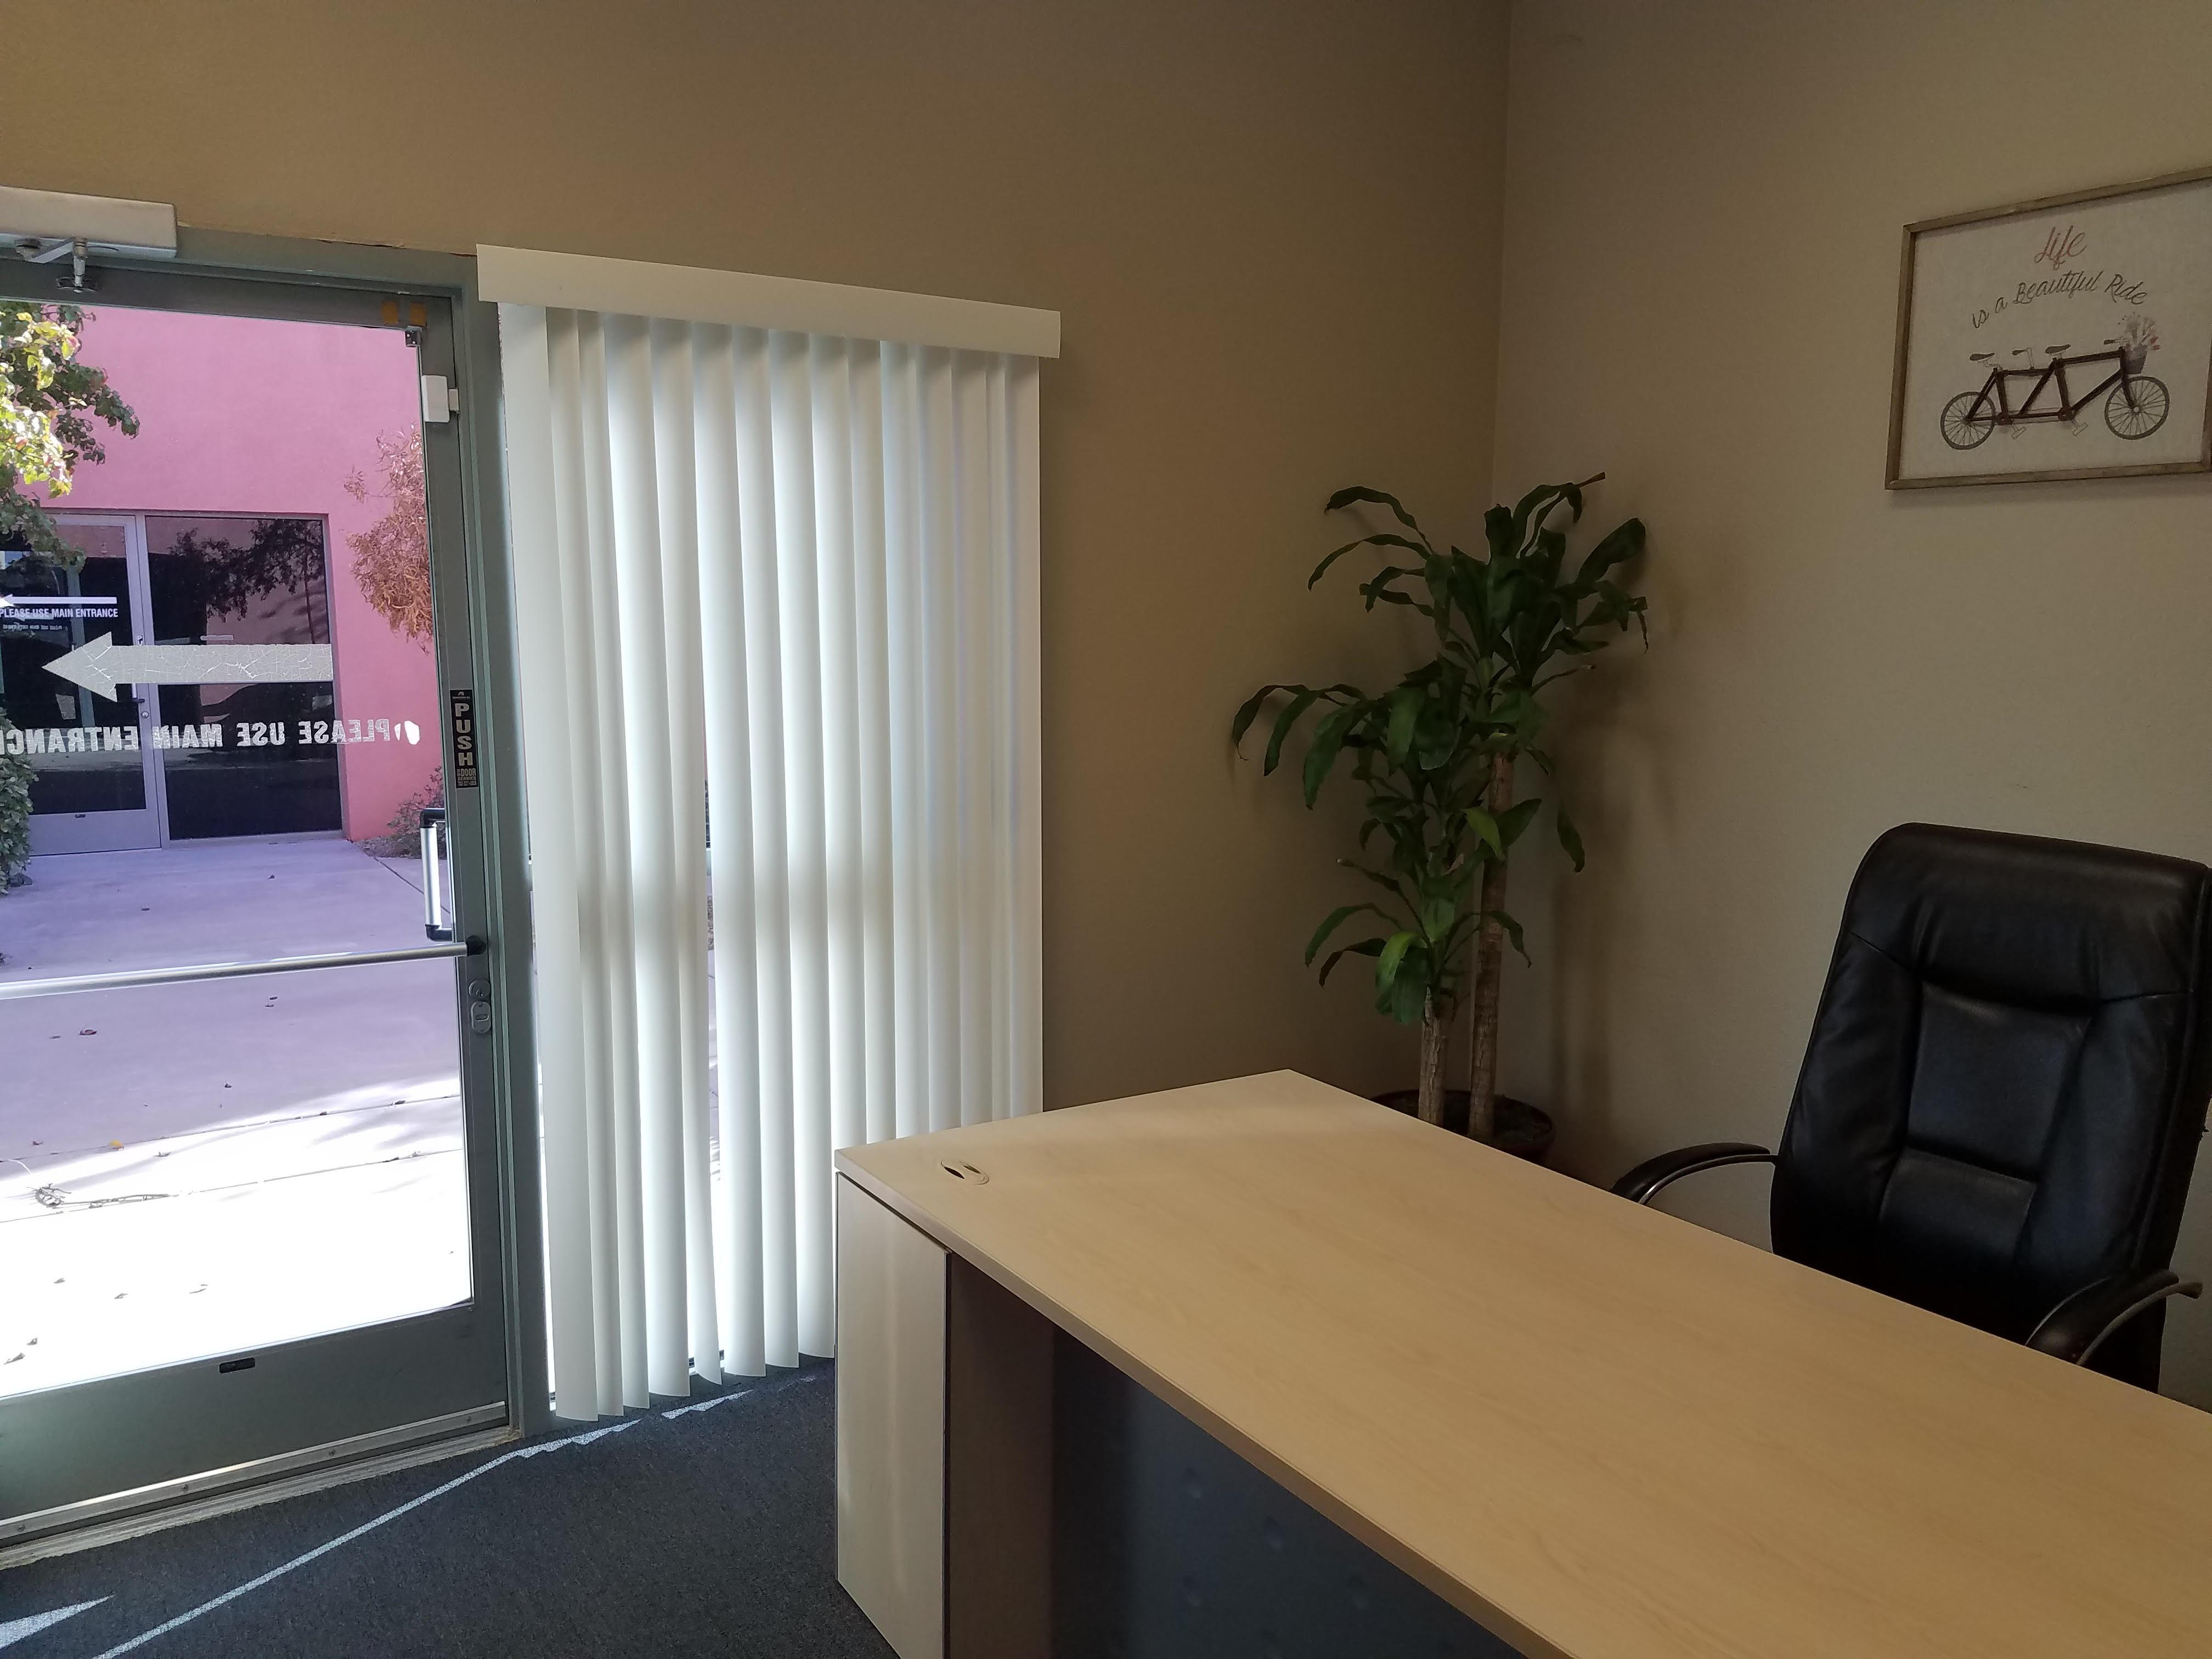 Evus Technologies - Courtyard Entry Office